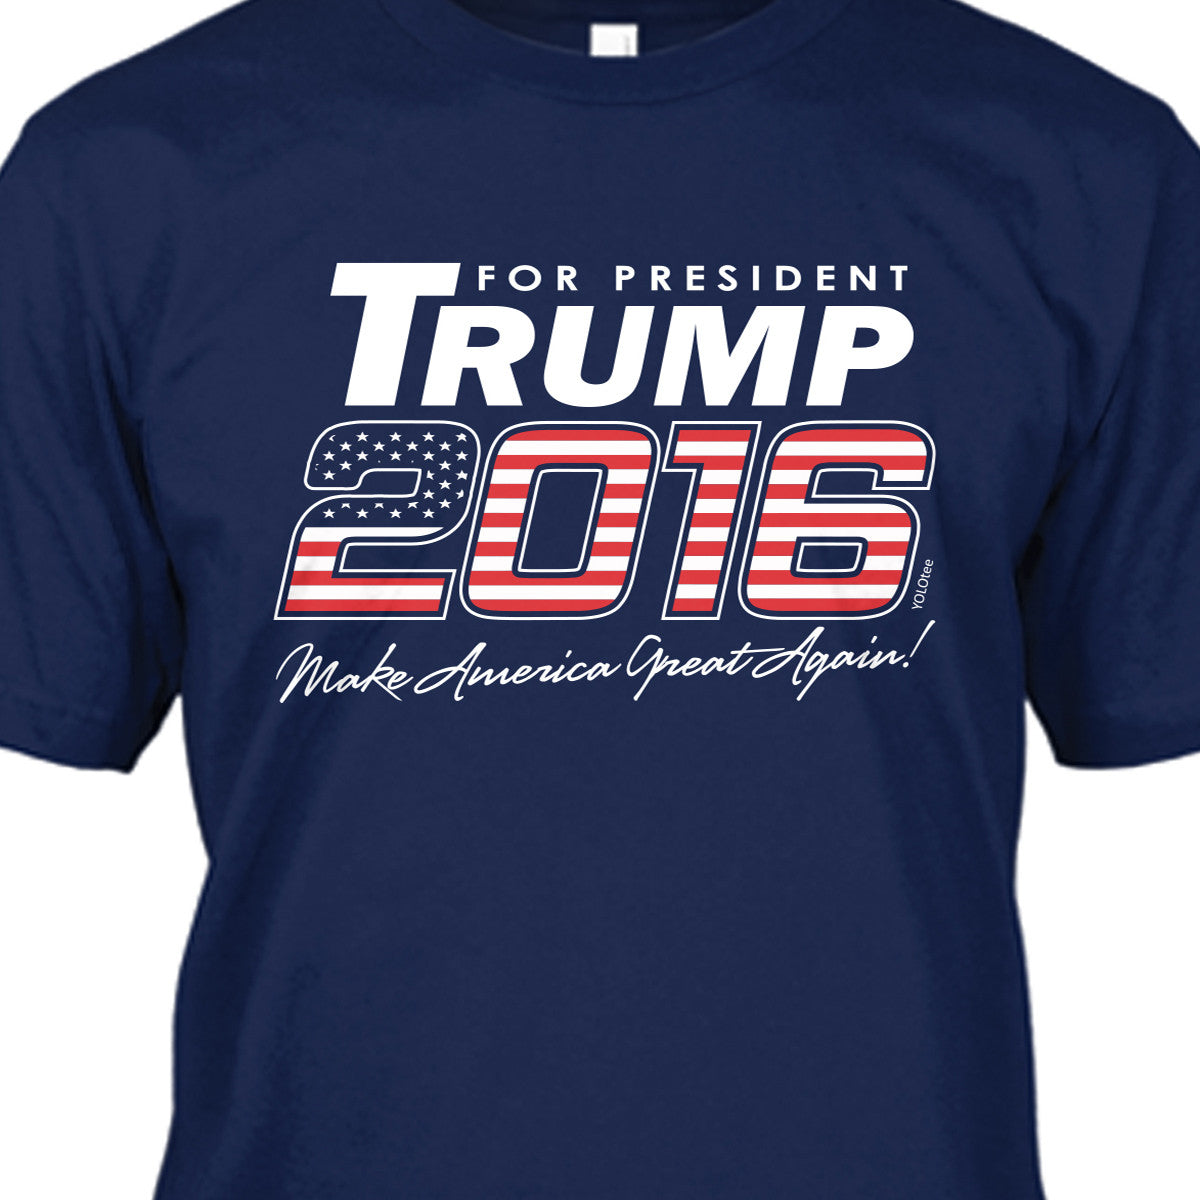 Make America Great Again Premium Shirt